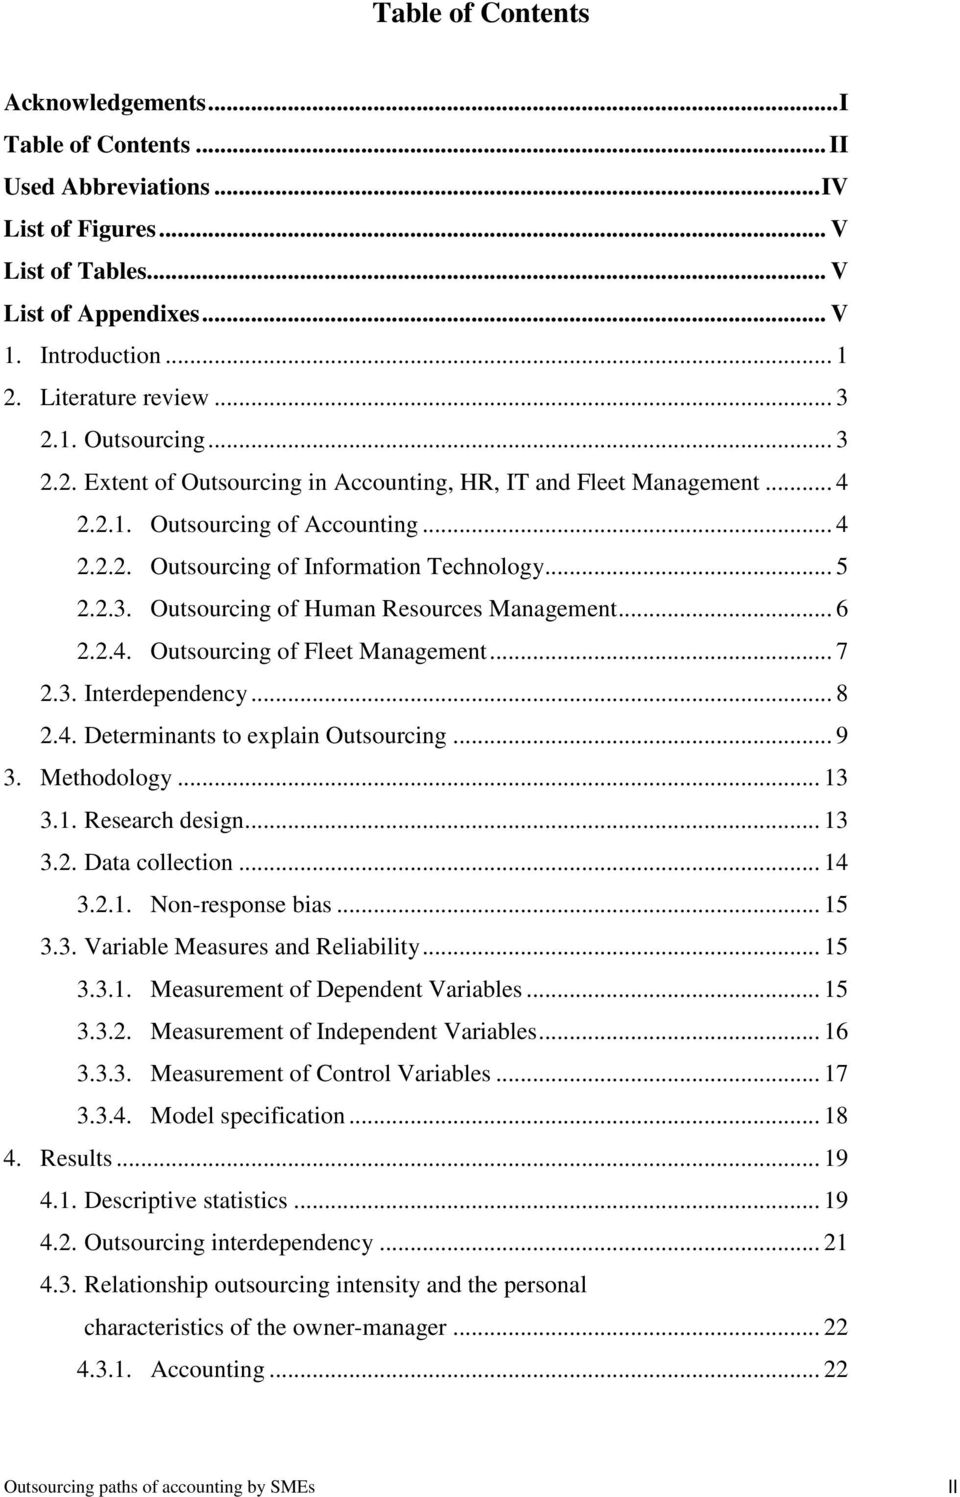 .. 6 2.2.4. Outsourcing of Fleet Management... 7 2.3. Interdependency... 8 2.4. Determinants to explain Outsourcing... 9 3. Methodology... 13 3.1. Research design... 13 3.2. Data collection... 14 3.2.1. Non-response bias.